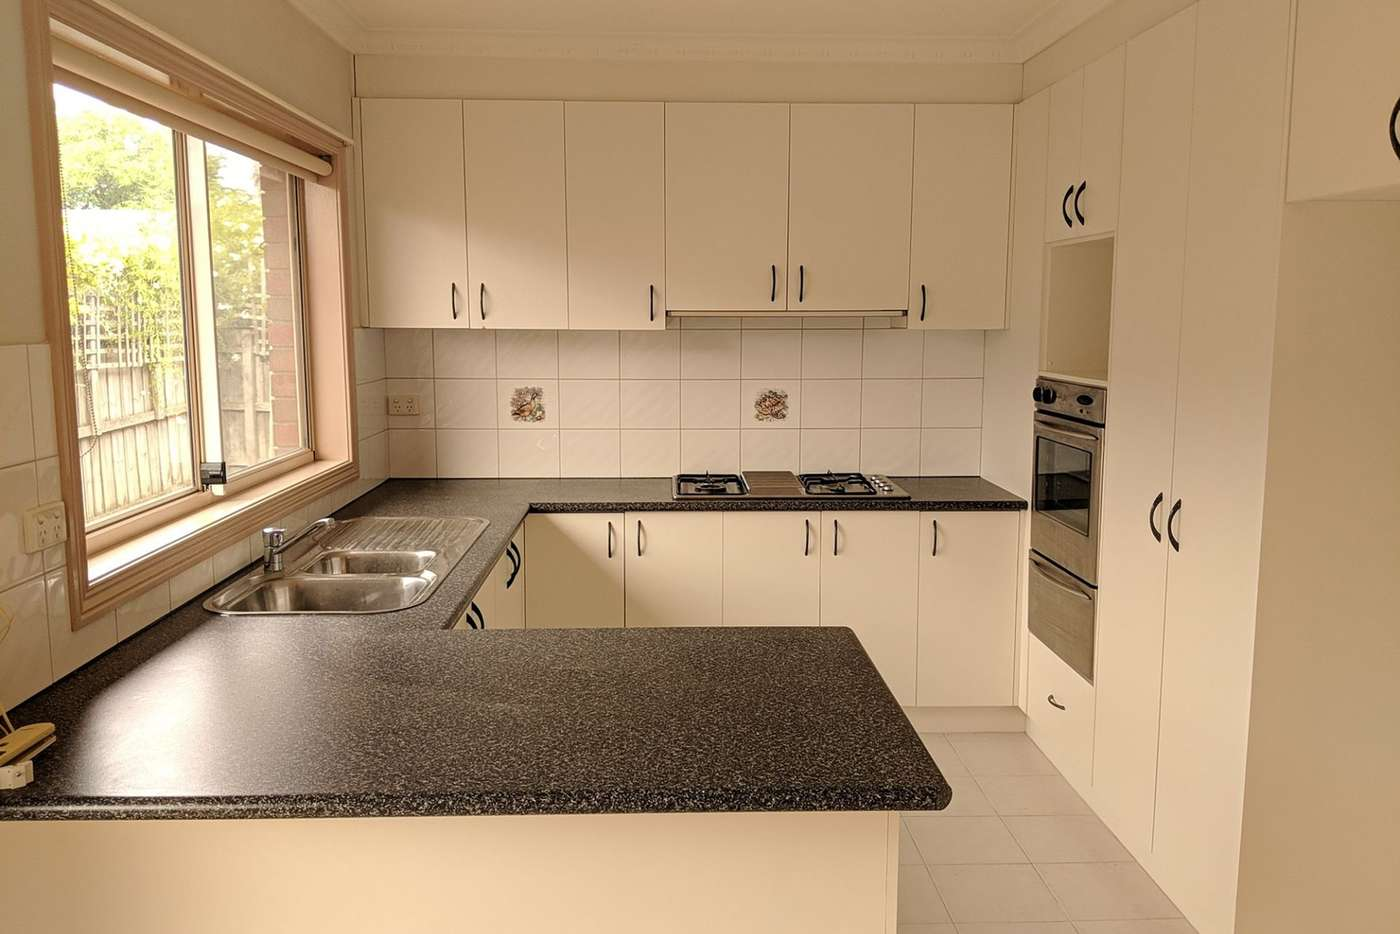 Sixth view of Homely villa listing, 3/29 Mortimore St, Bentleigh VIC 3204